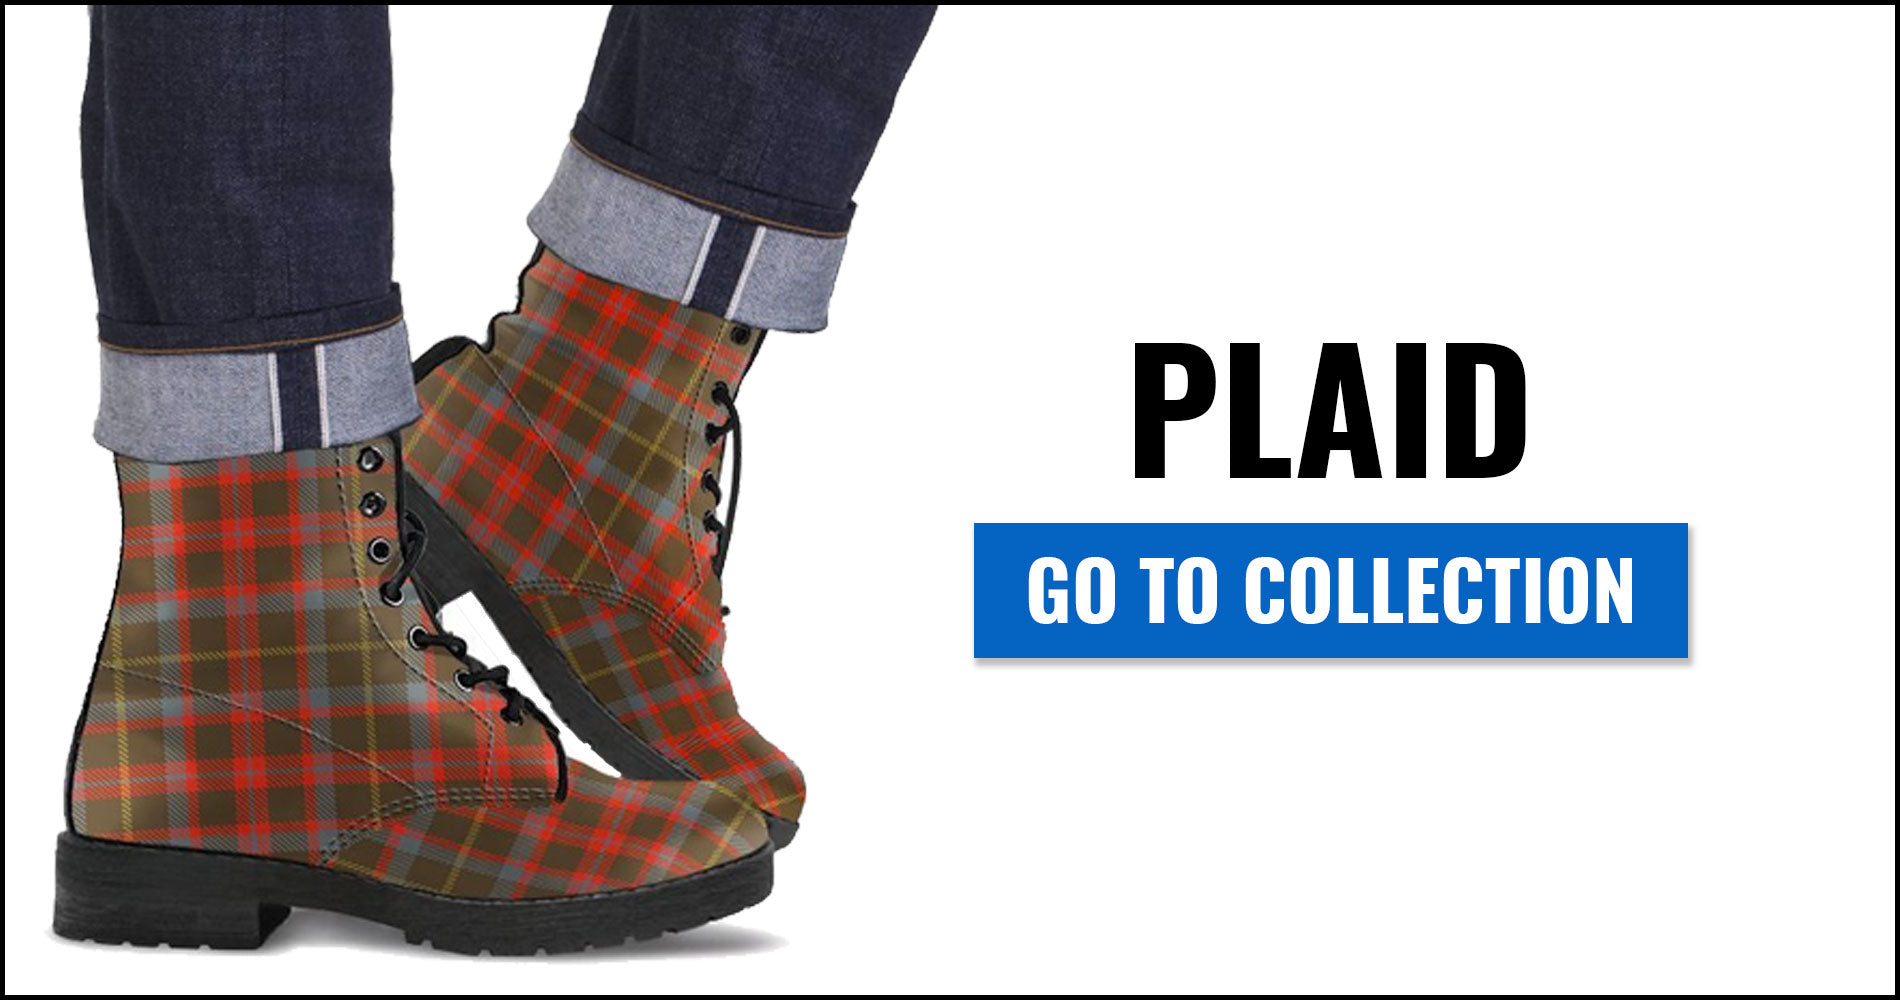 Plaid Tartan Leather Boots